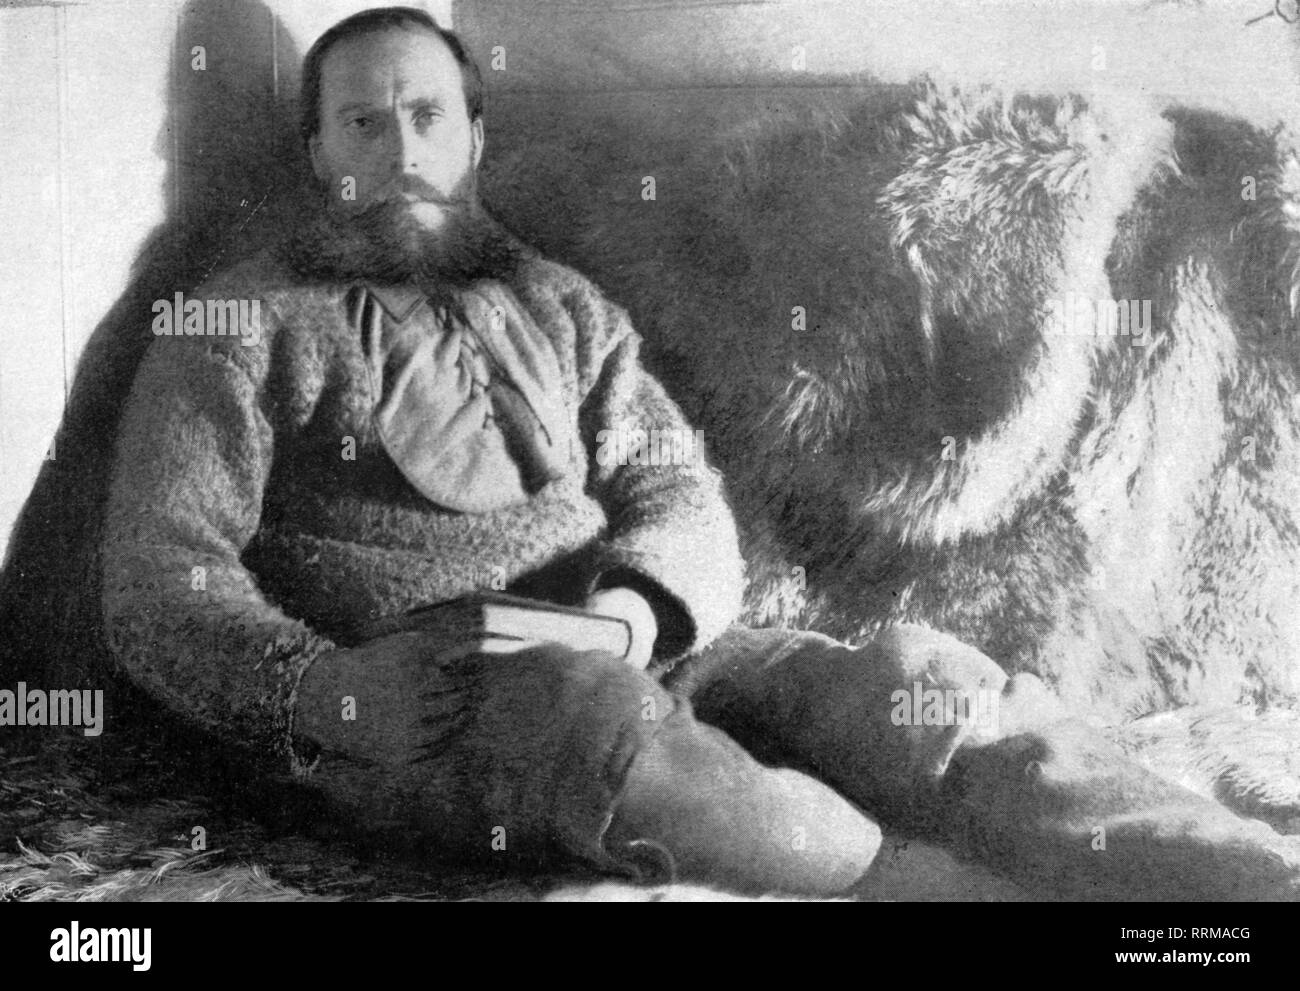 Sverdrup, Otto, 31.10.1854 - 26.11.1930, Norwegian navigator and arctic explorer, half length, in his cabin during the Fram expedition 1893 - 1896, from: Fridtjof Nansen, 'In Nacht und Eis', volume I, Leipzig, 1897, Additional-Rights-Clearance-Info-Not-Available - Stock Image